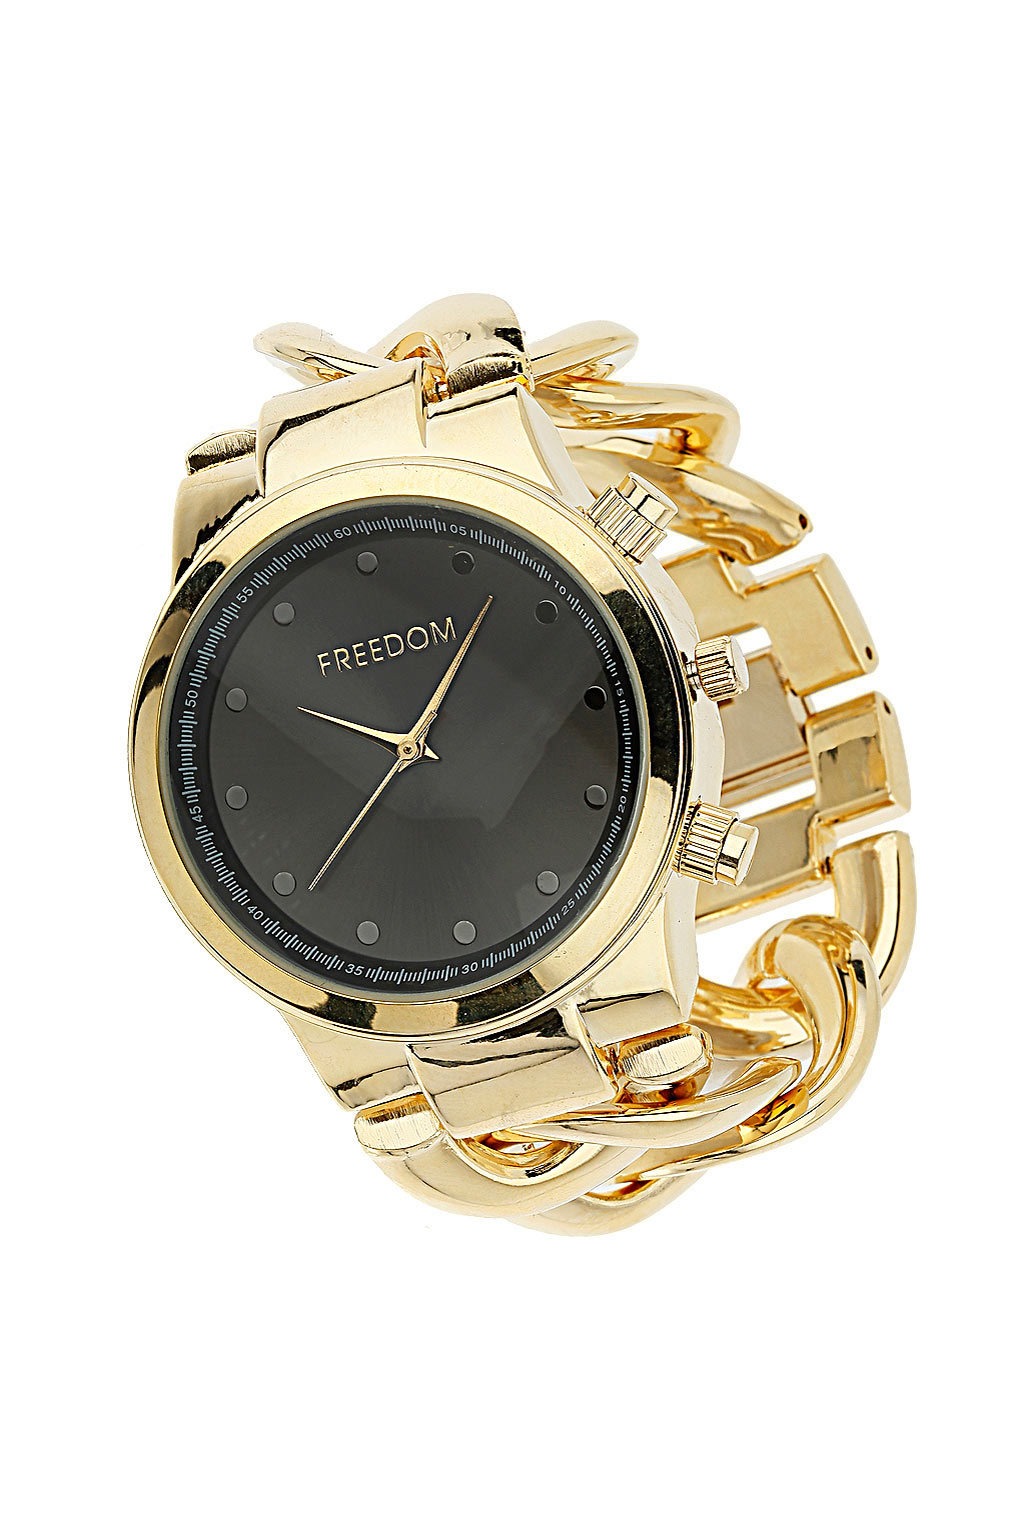 untitled rose casio watches edifice men gold watch chain black